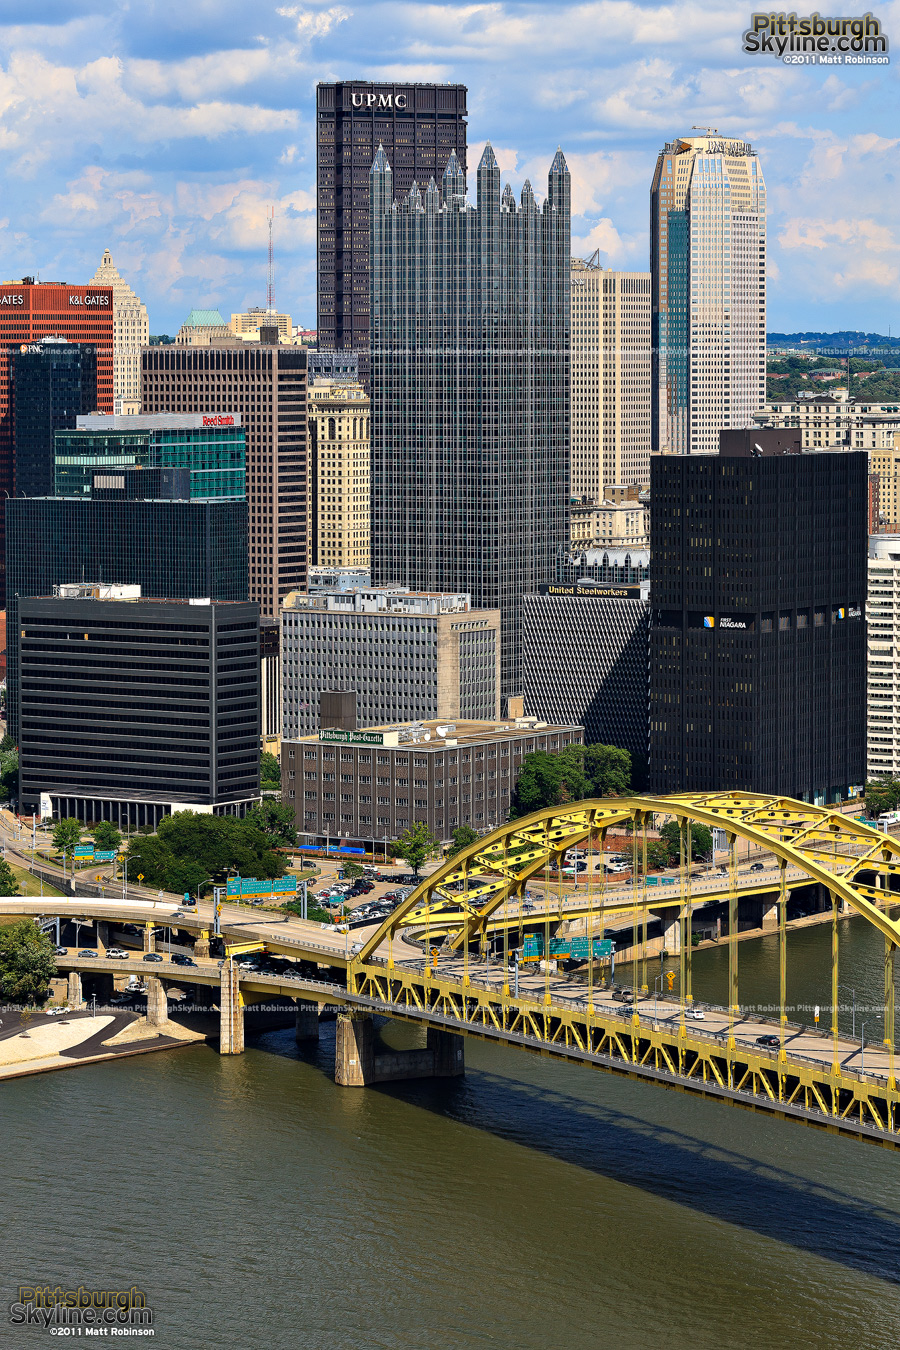 Fort Pitt Bridge with Pittsburgh buildings